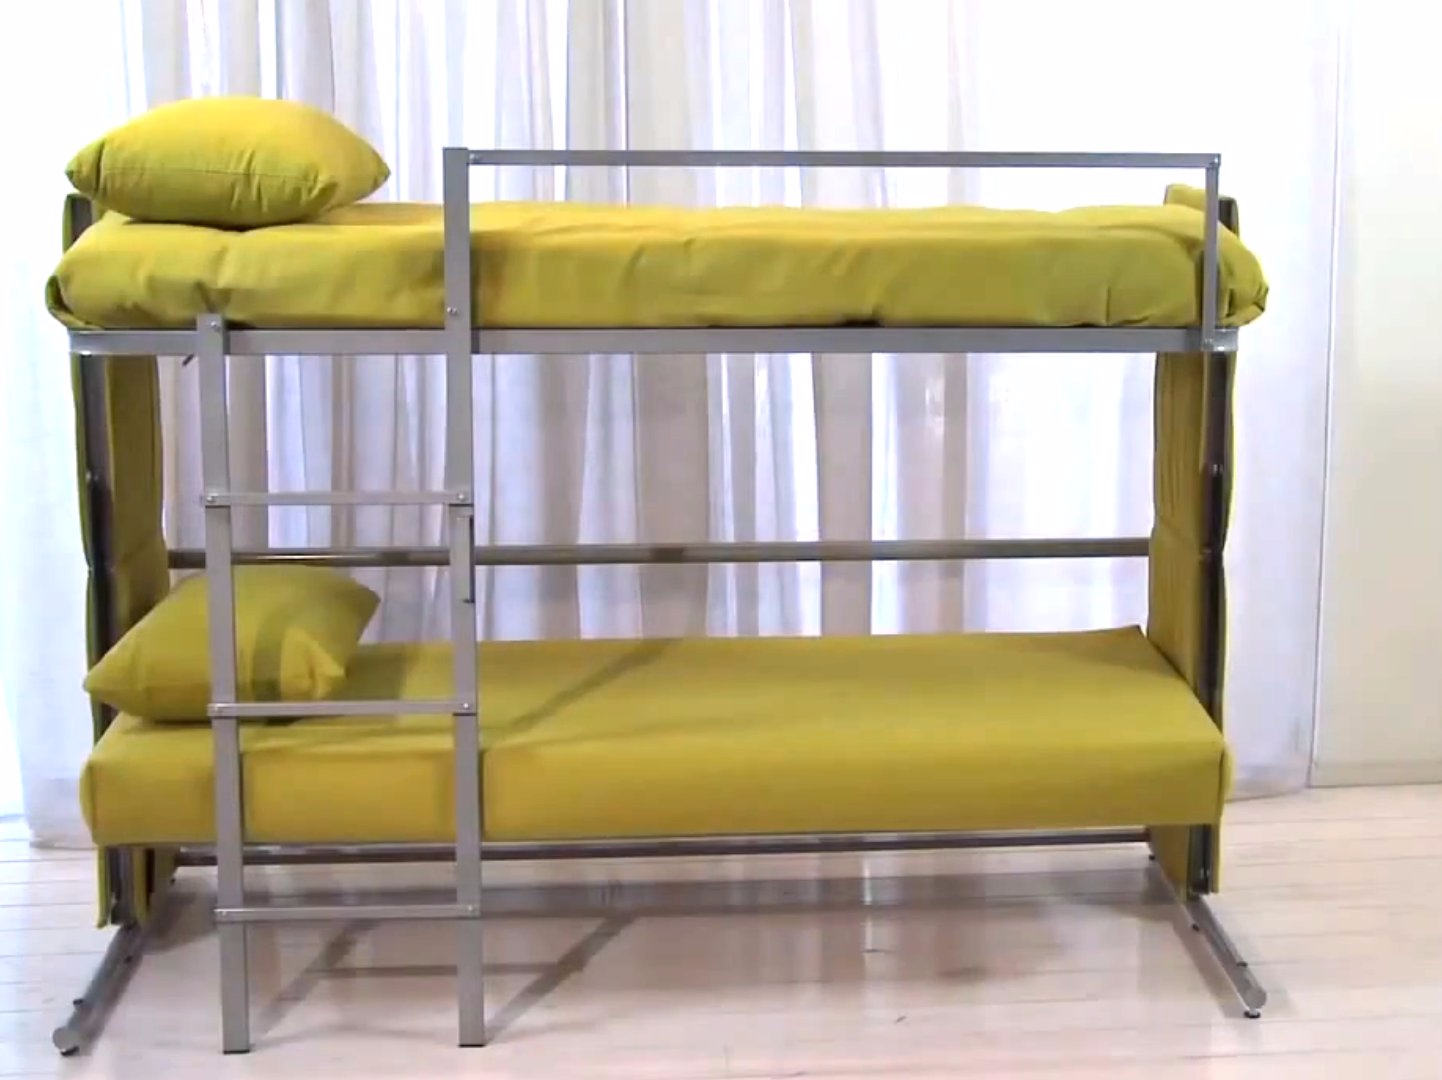 Designed Couch That Turns Into a Bunk Bed